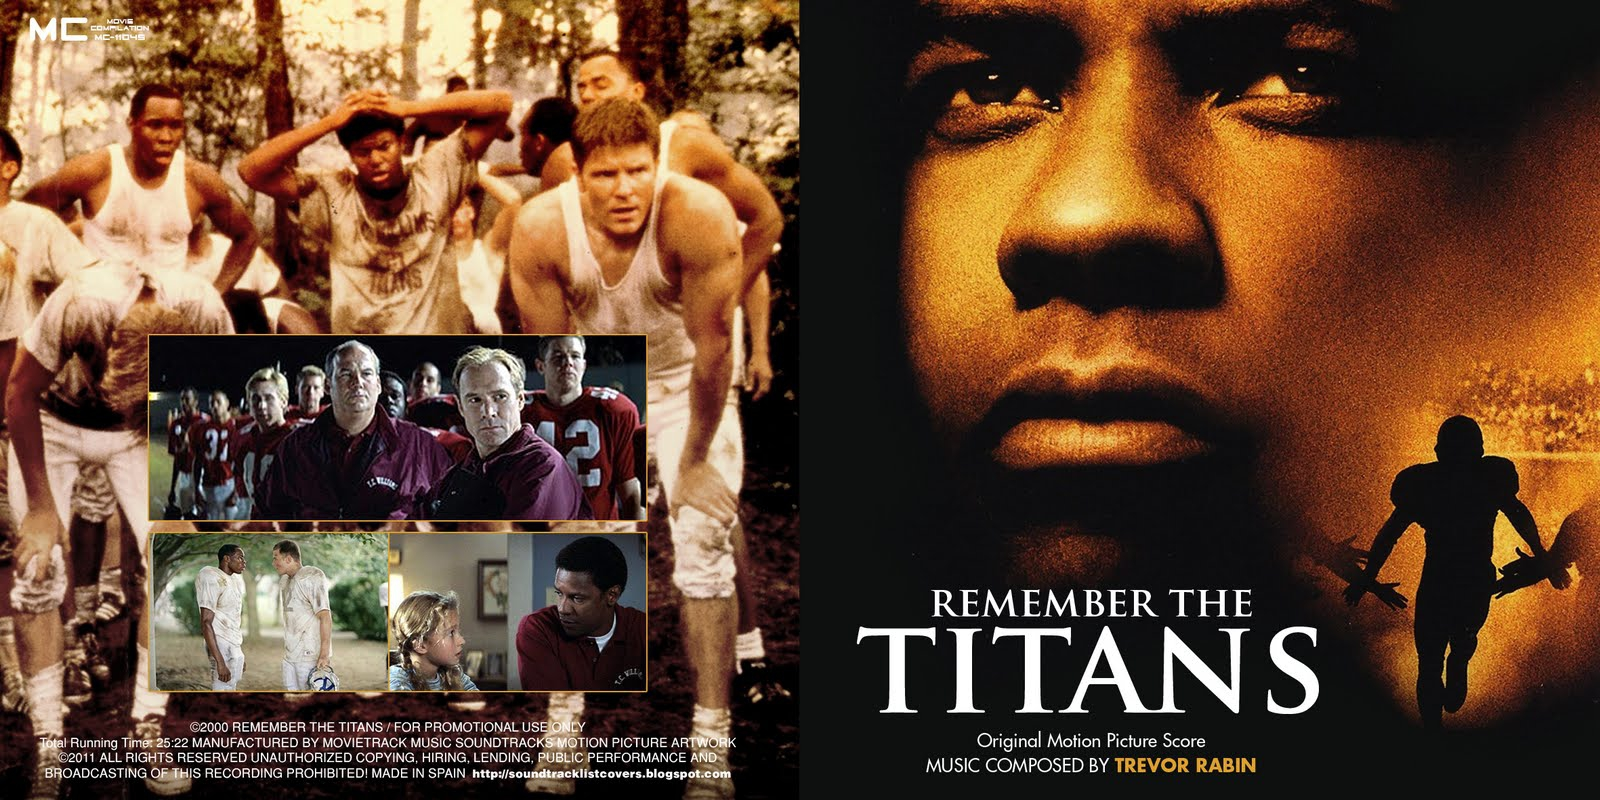 Top 10 sports movies of all time